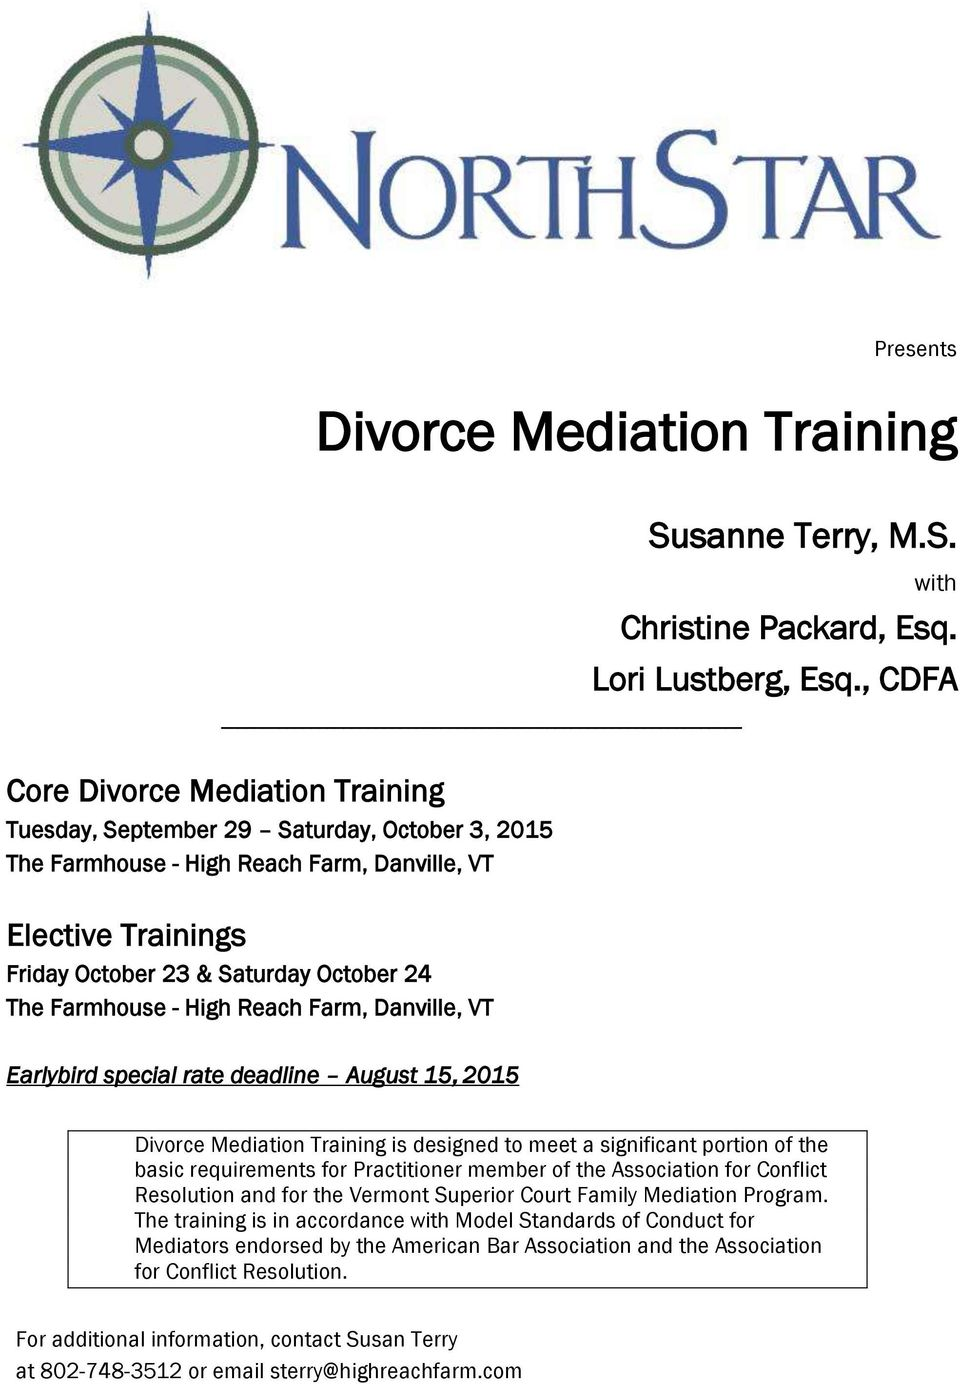 Farmhouse - High Reach Farm, Danville, VT Earlybird special rate deadline August 15, 2015 Divorce Mediation Training is designed to meet a significant portion of the basic requirements for